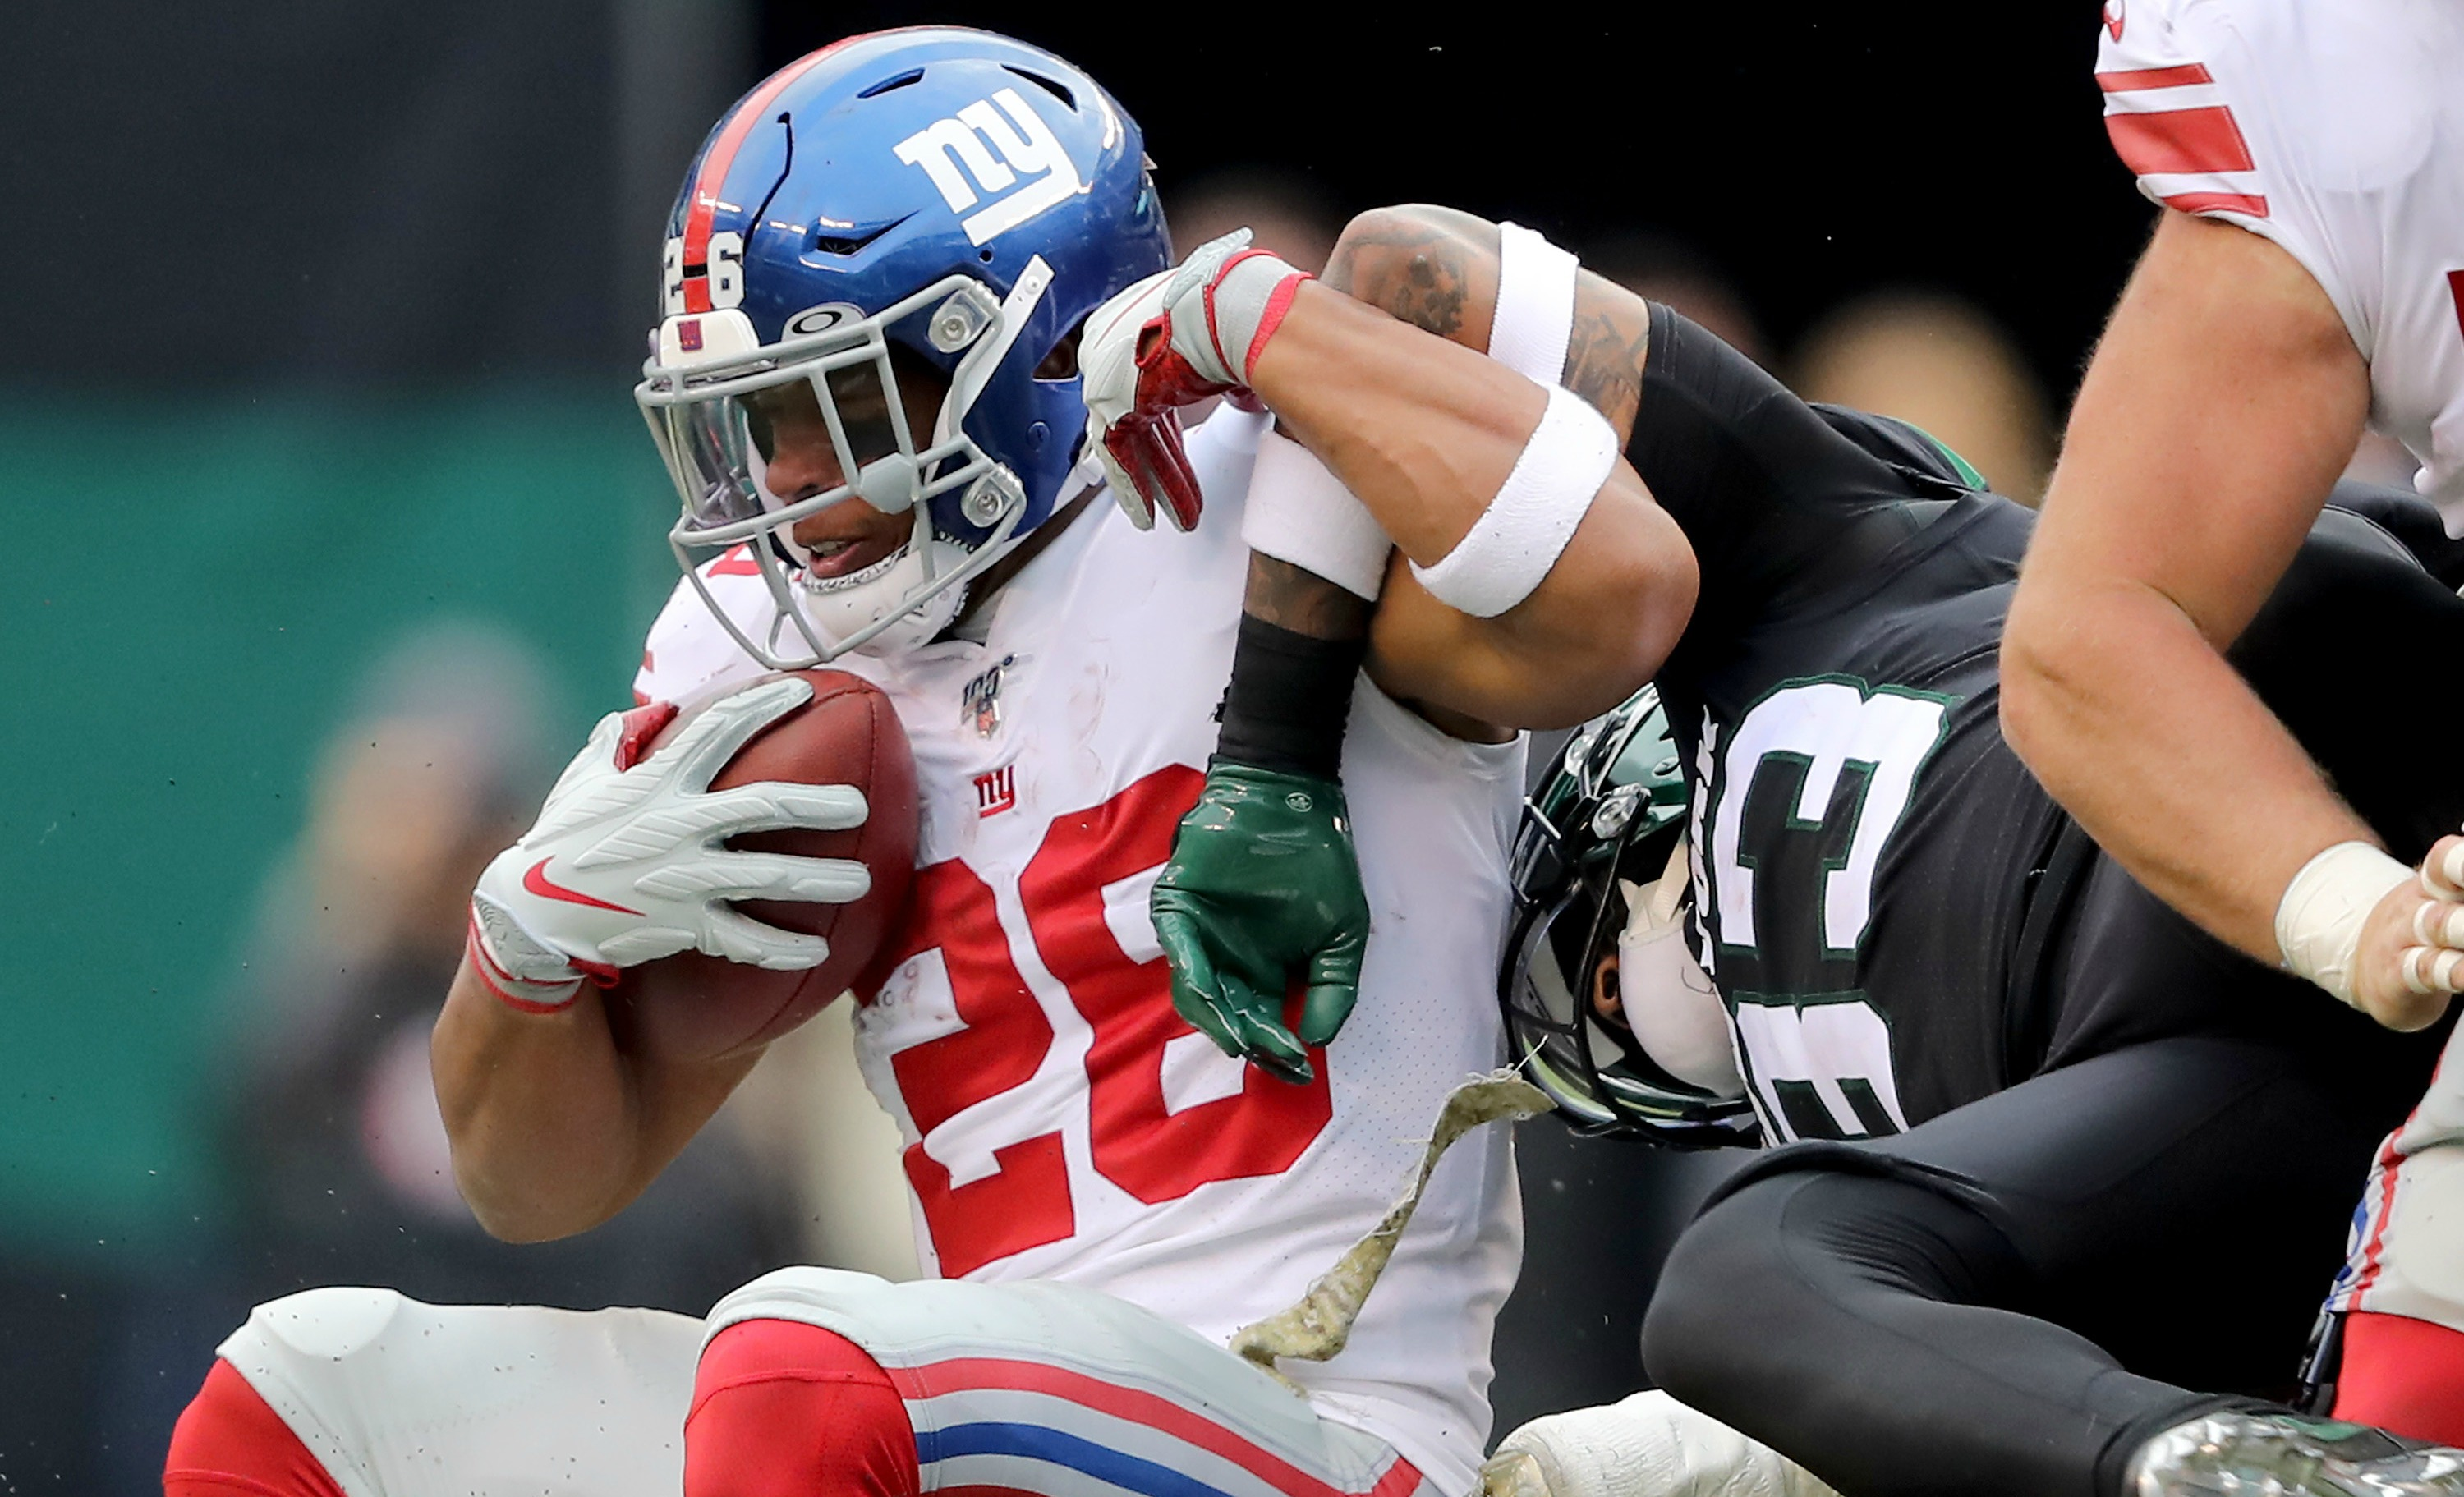 Barkley Credits Jets' Defense For His Nightmare Performance